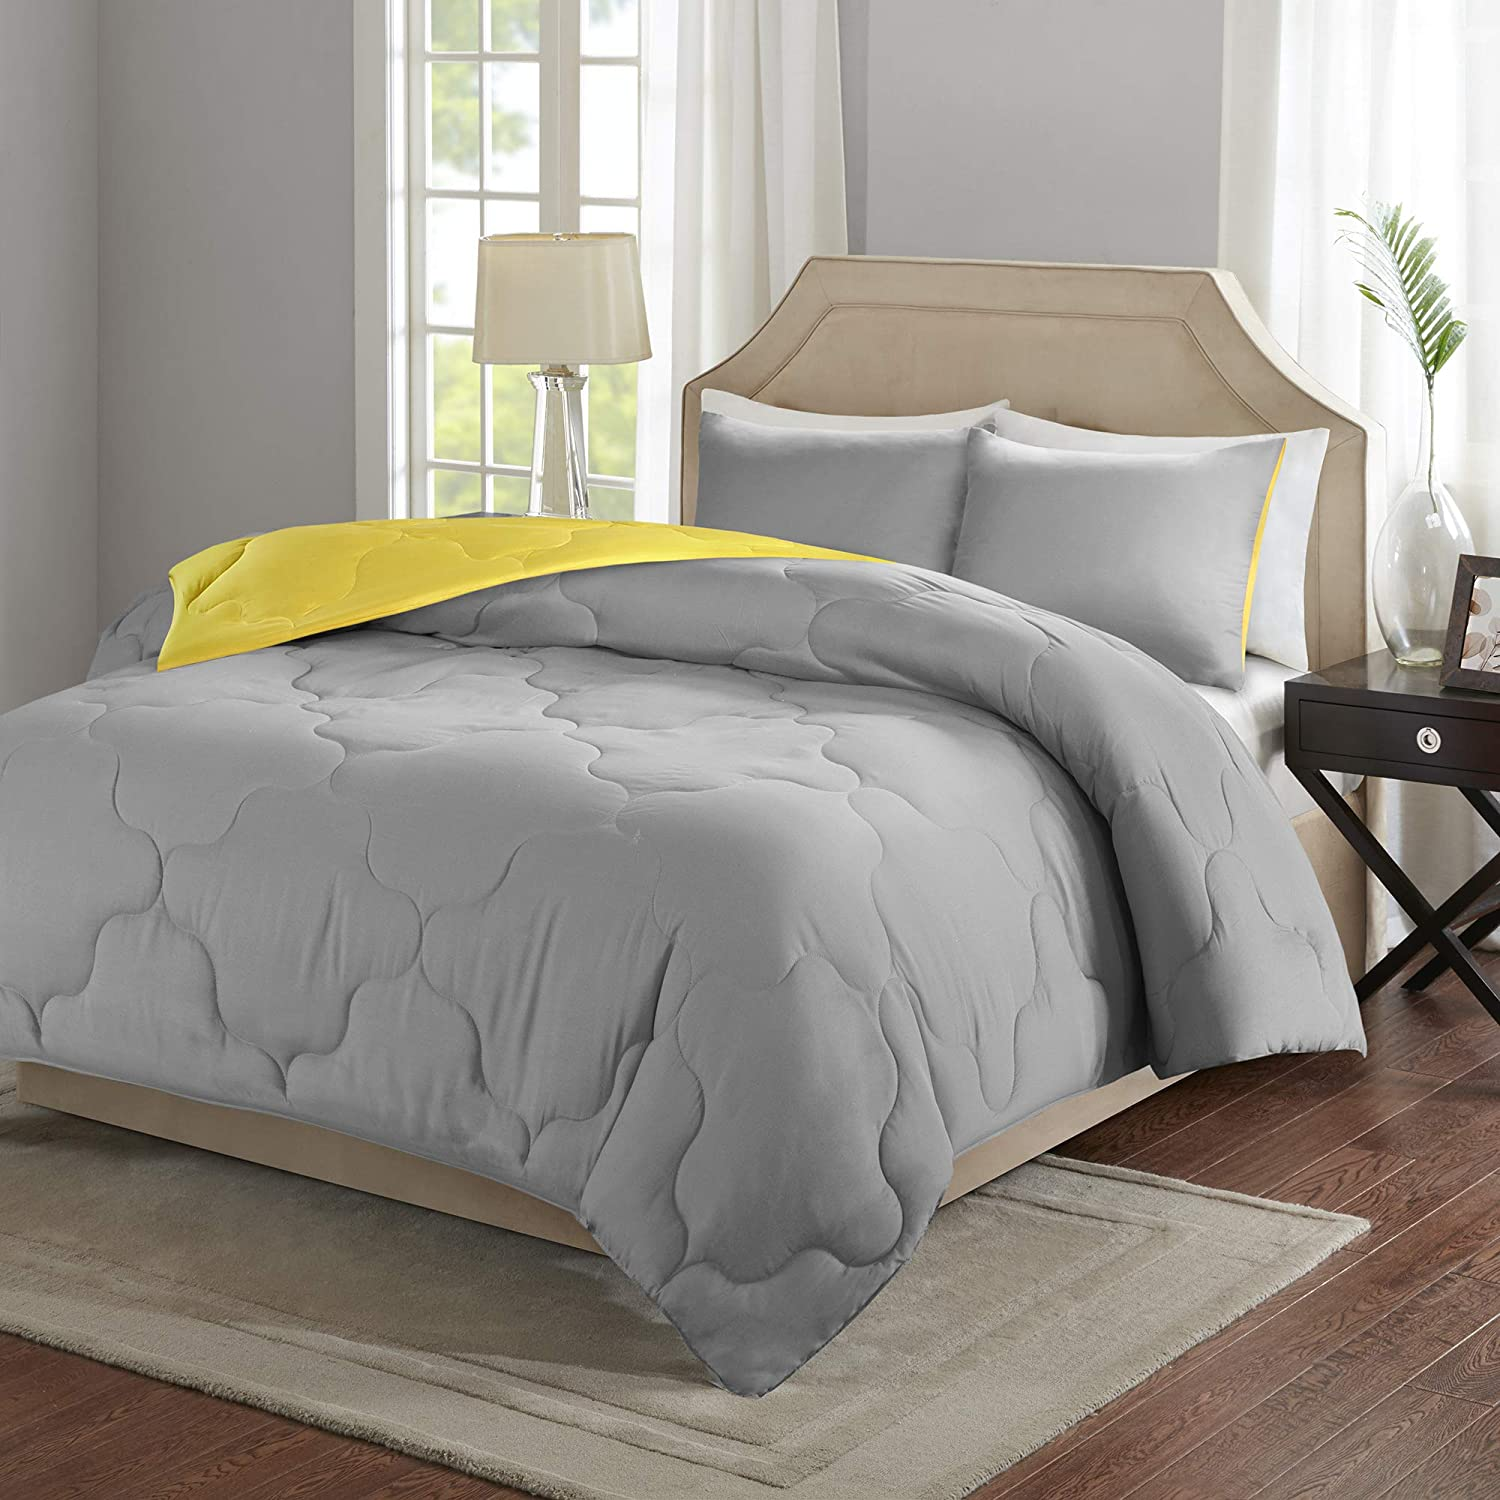 Comfort Spaces Vixie Reversible Comforter Set-Modern Geometric Quaterfoil Cloud Quilted Design All Season Down Alternative Bedding, Matching Shams, Twin/Twin XL(66x90), Grey/Yellow